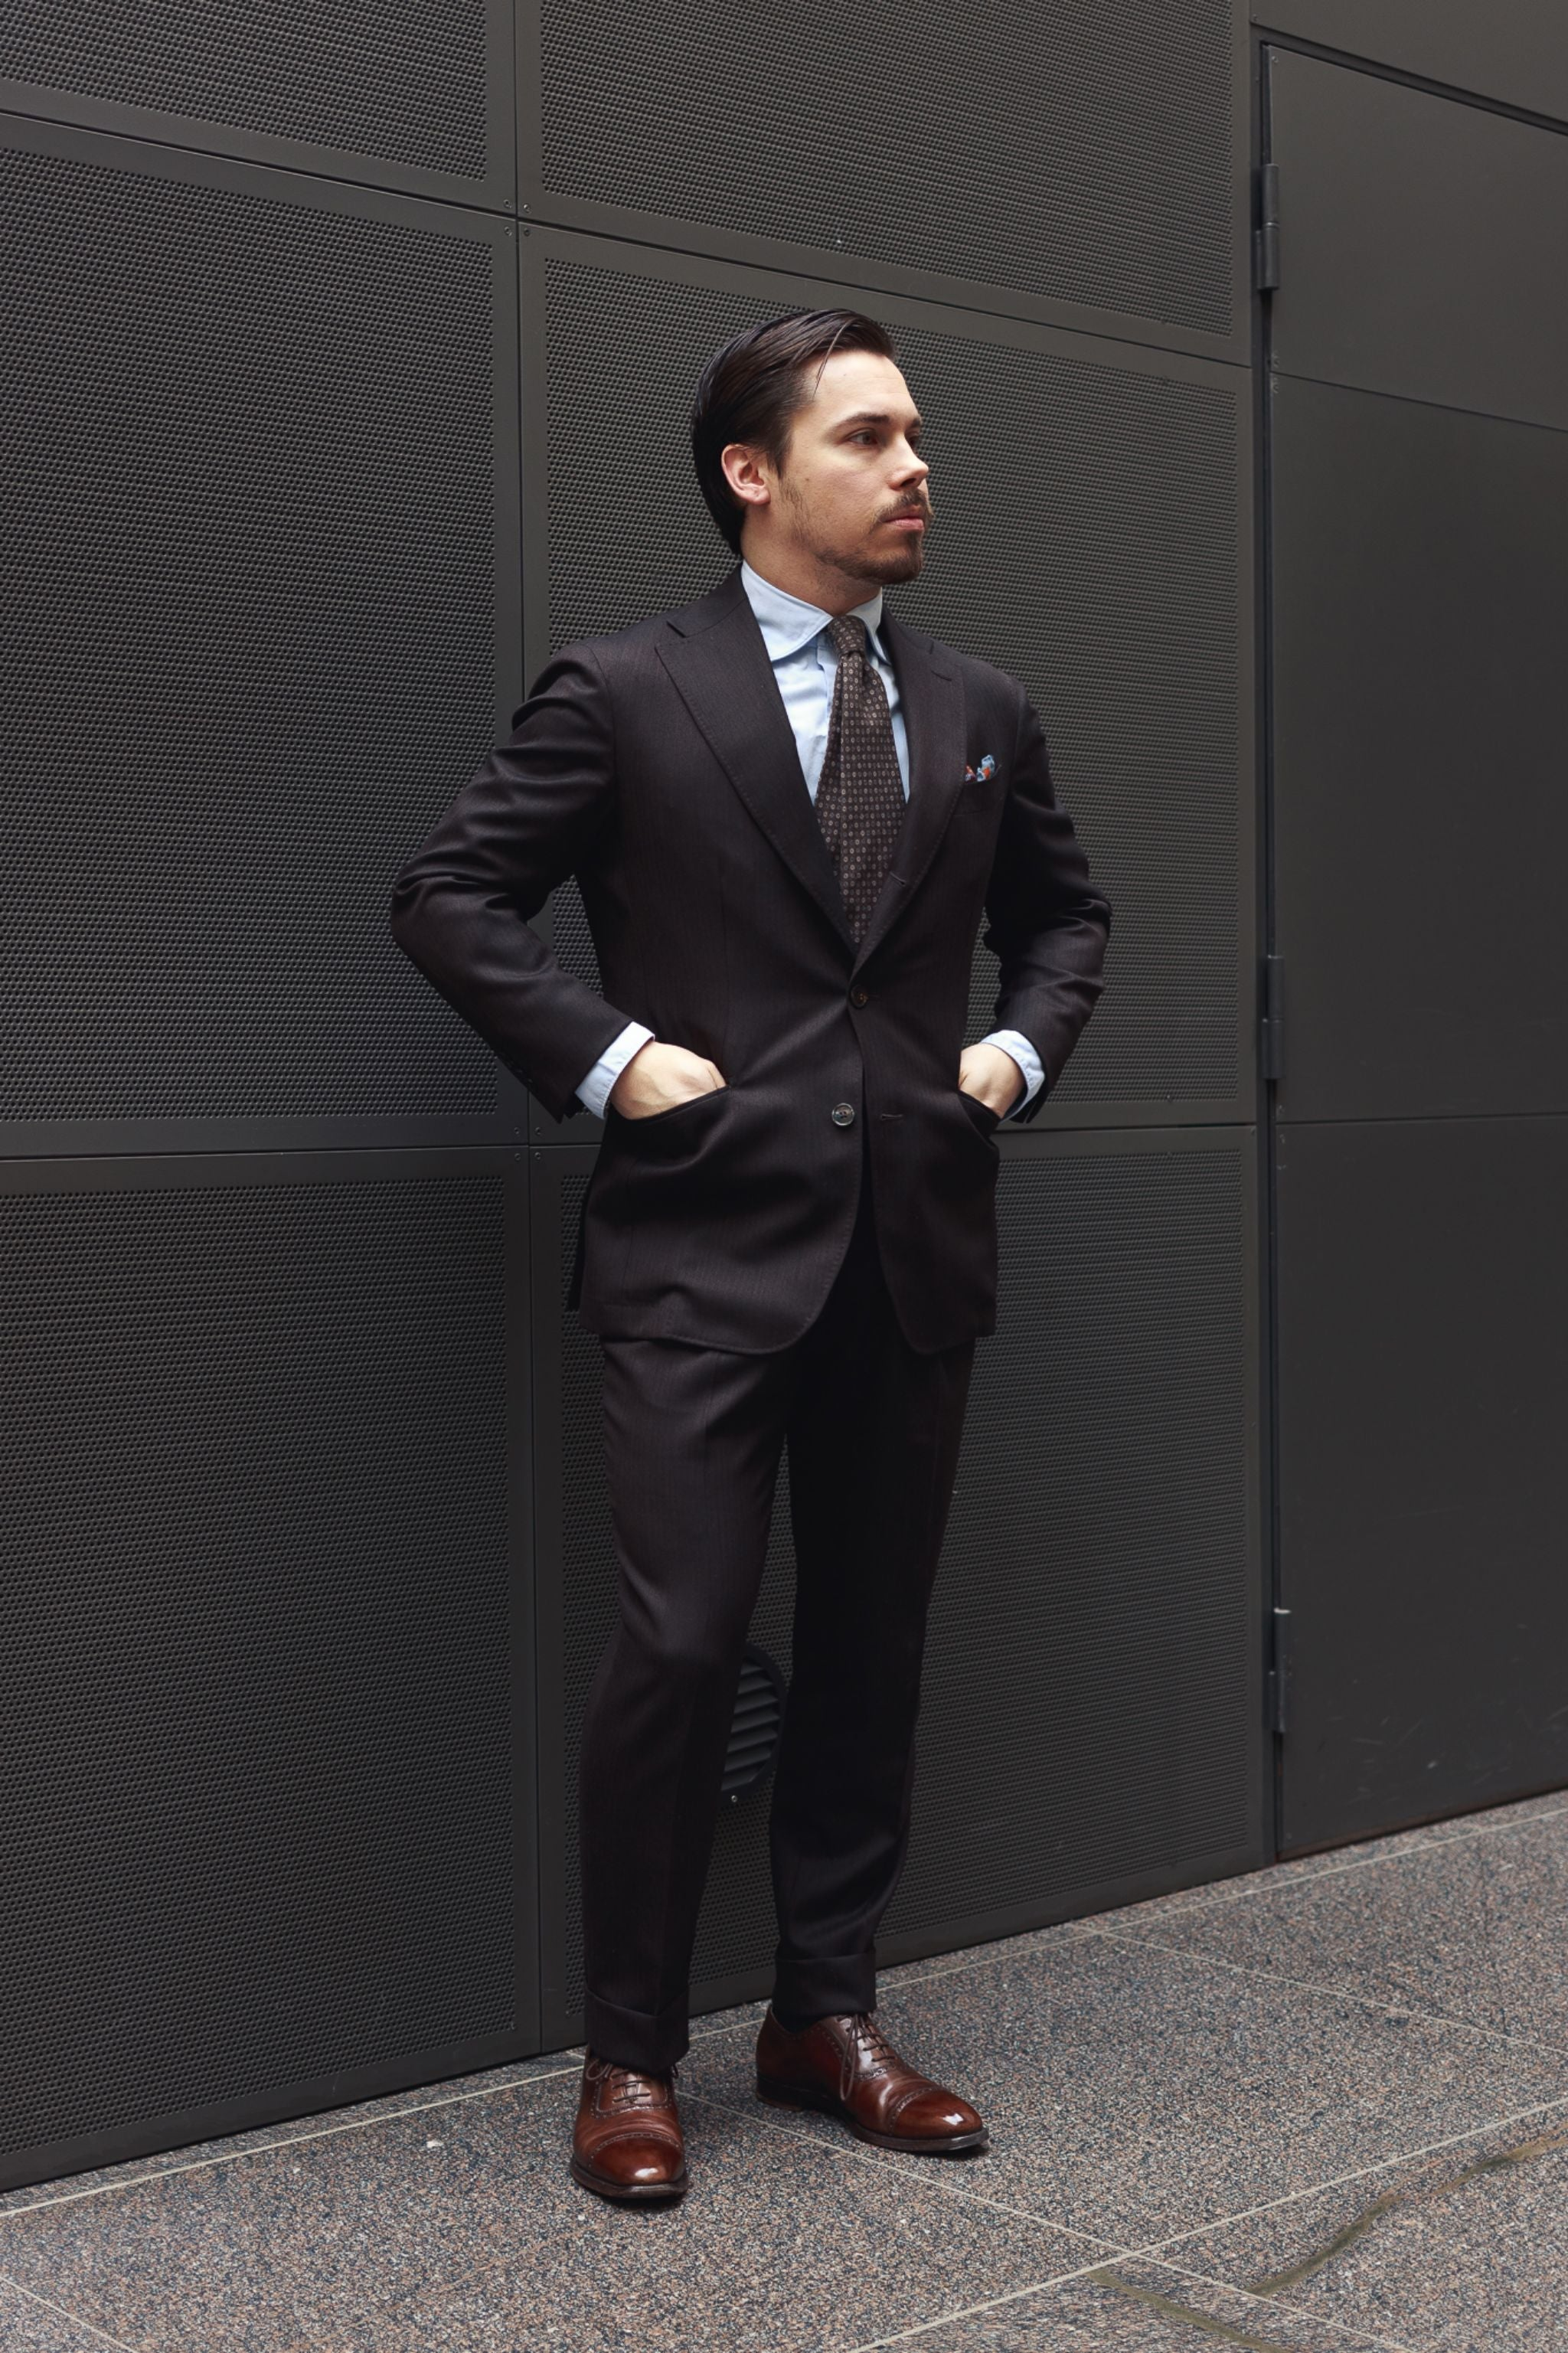 Brown business suit - make your suit more casual with light blue shirt and printed tie.